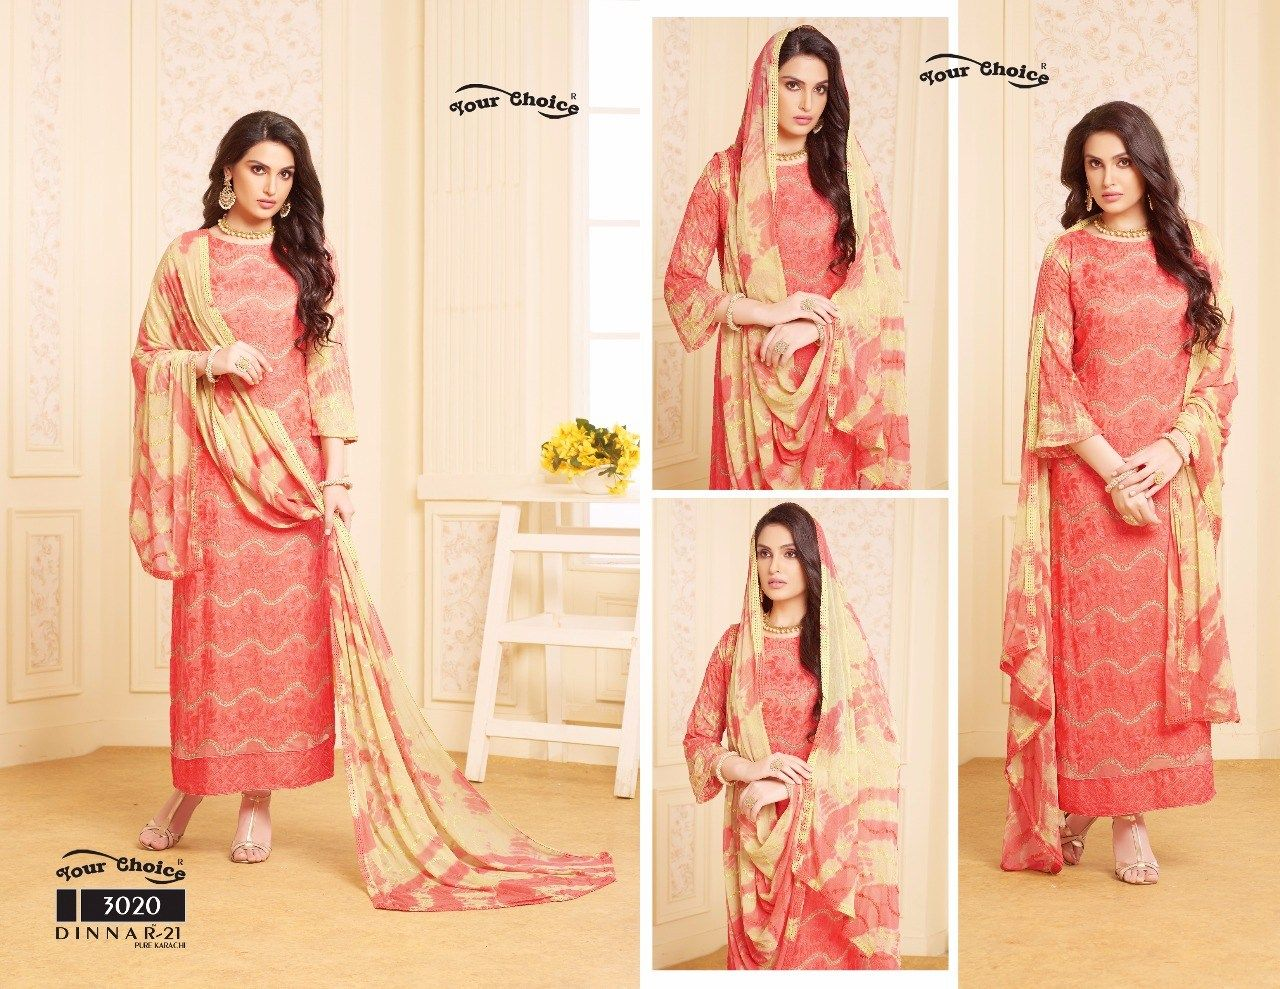 fa1734ff1a YOUR CHOICE DINNAR VOL 21 PURE CHIFFON SALWAR SUIT COLLECTION MANUFACTURER  WHOLESALER AND EXPORTER OF INDIAN ETHNIC WEAR IN INDIA | Sagar Impex